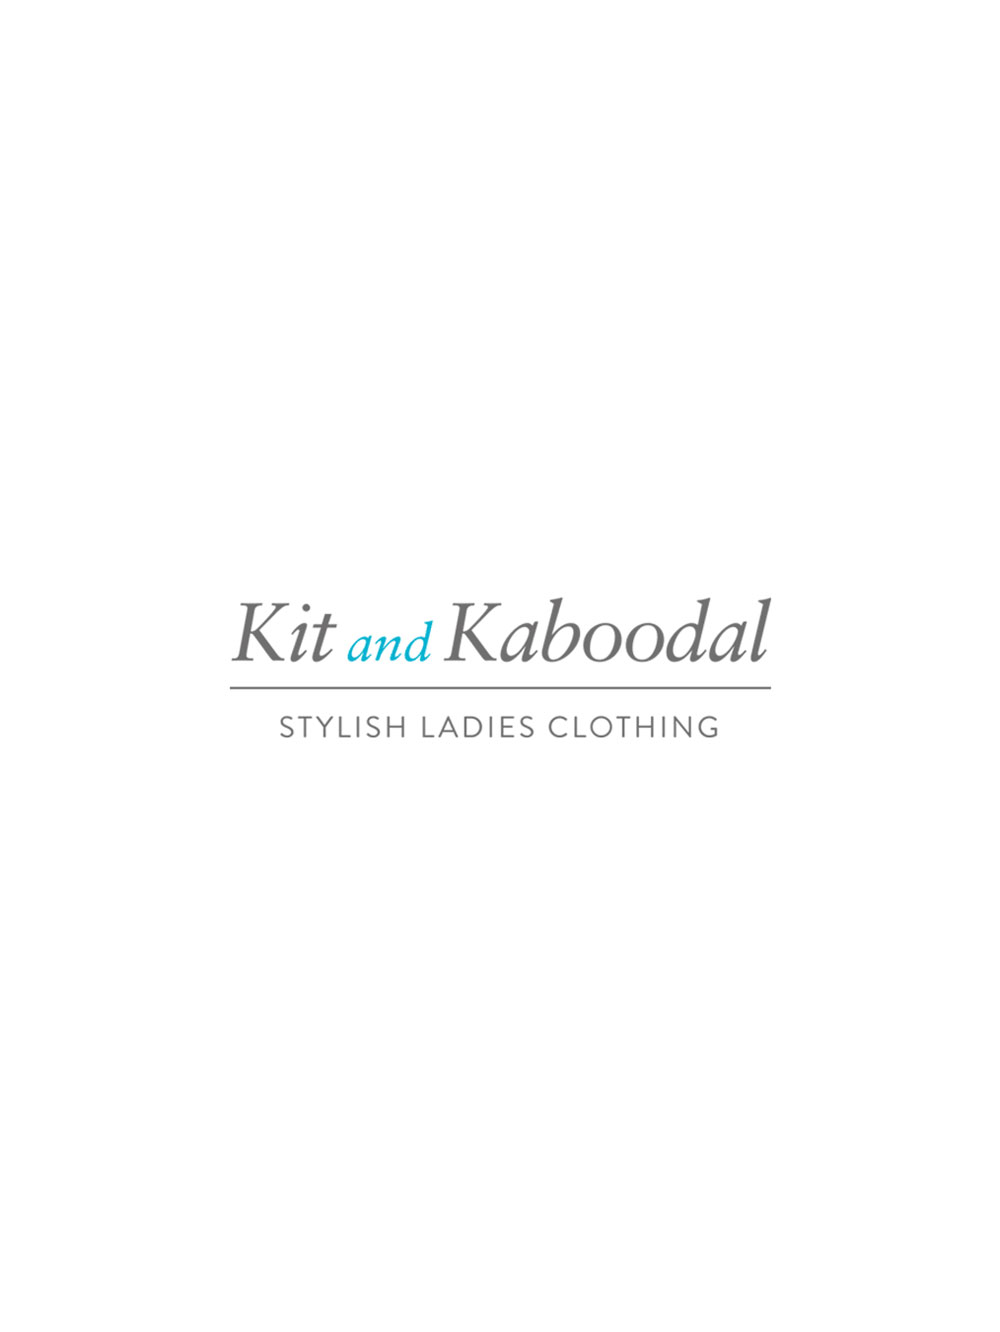 Kit and Kaboodal Tumeric 2 Necklace Rose Gold